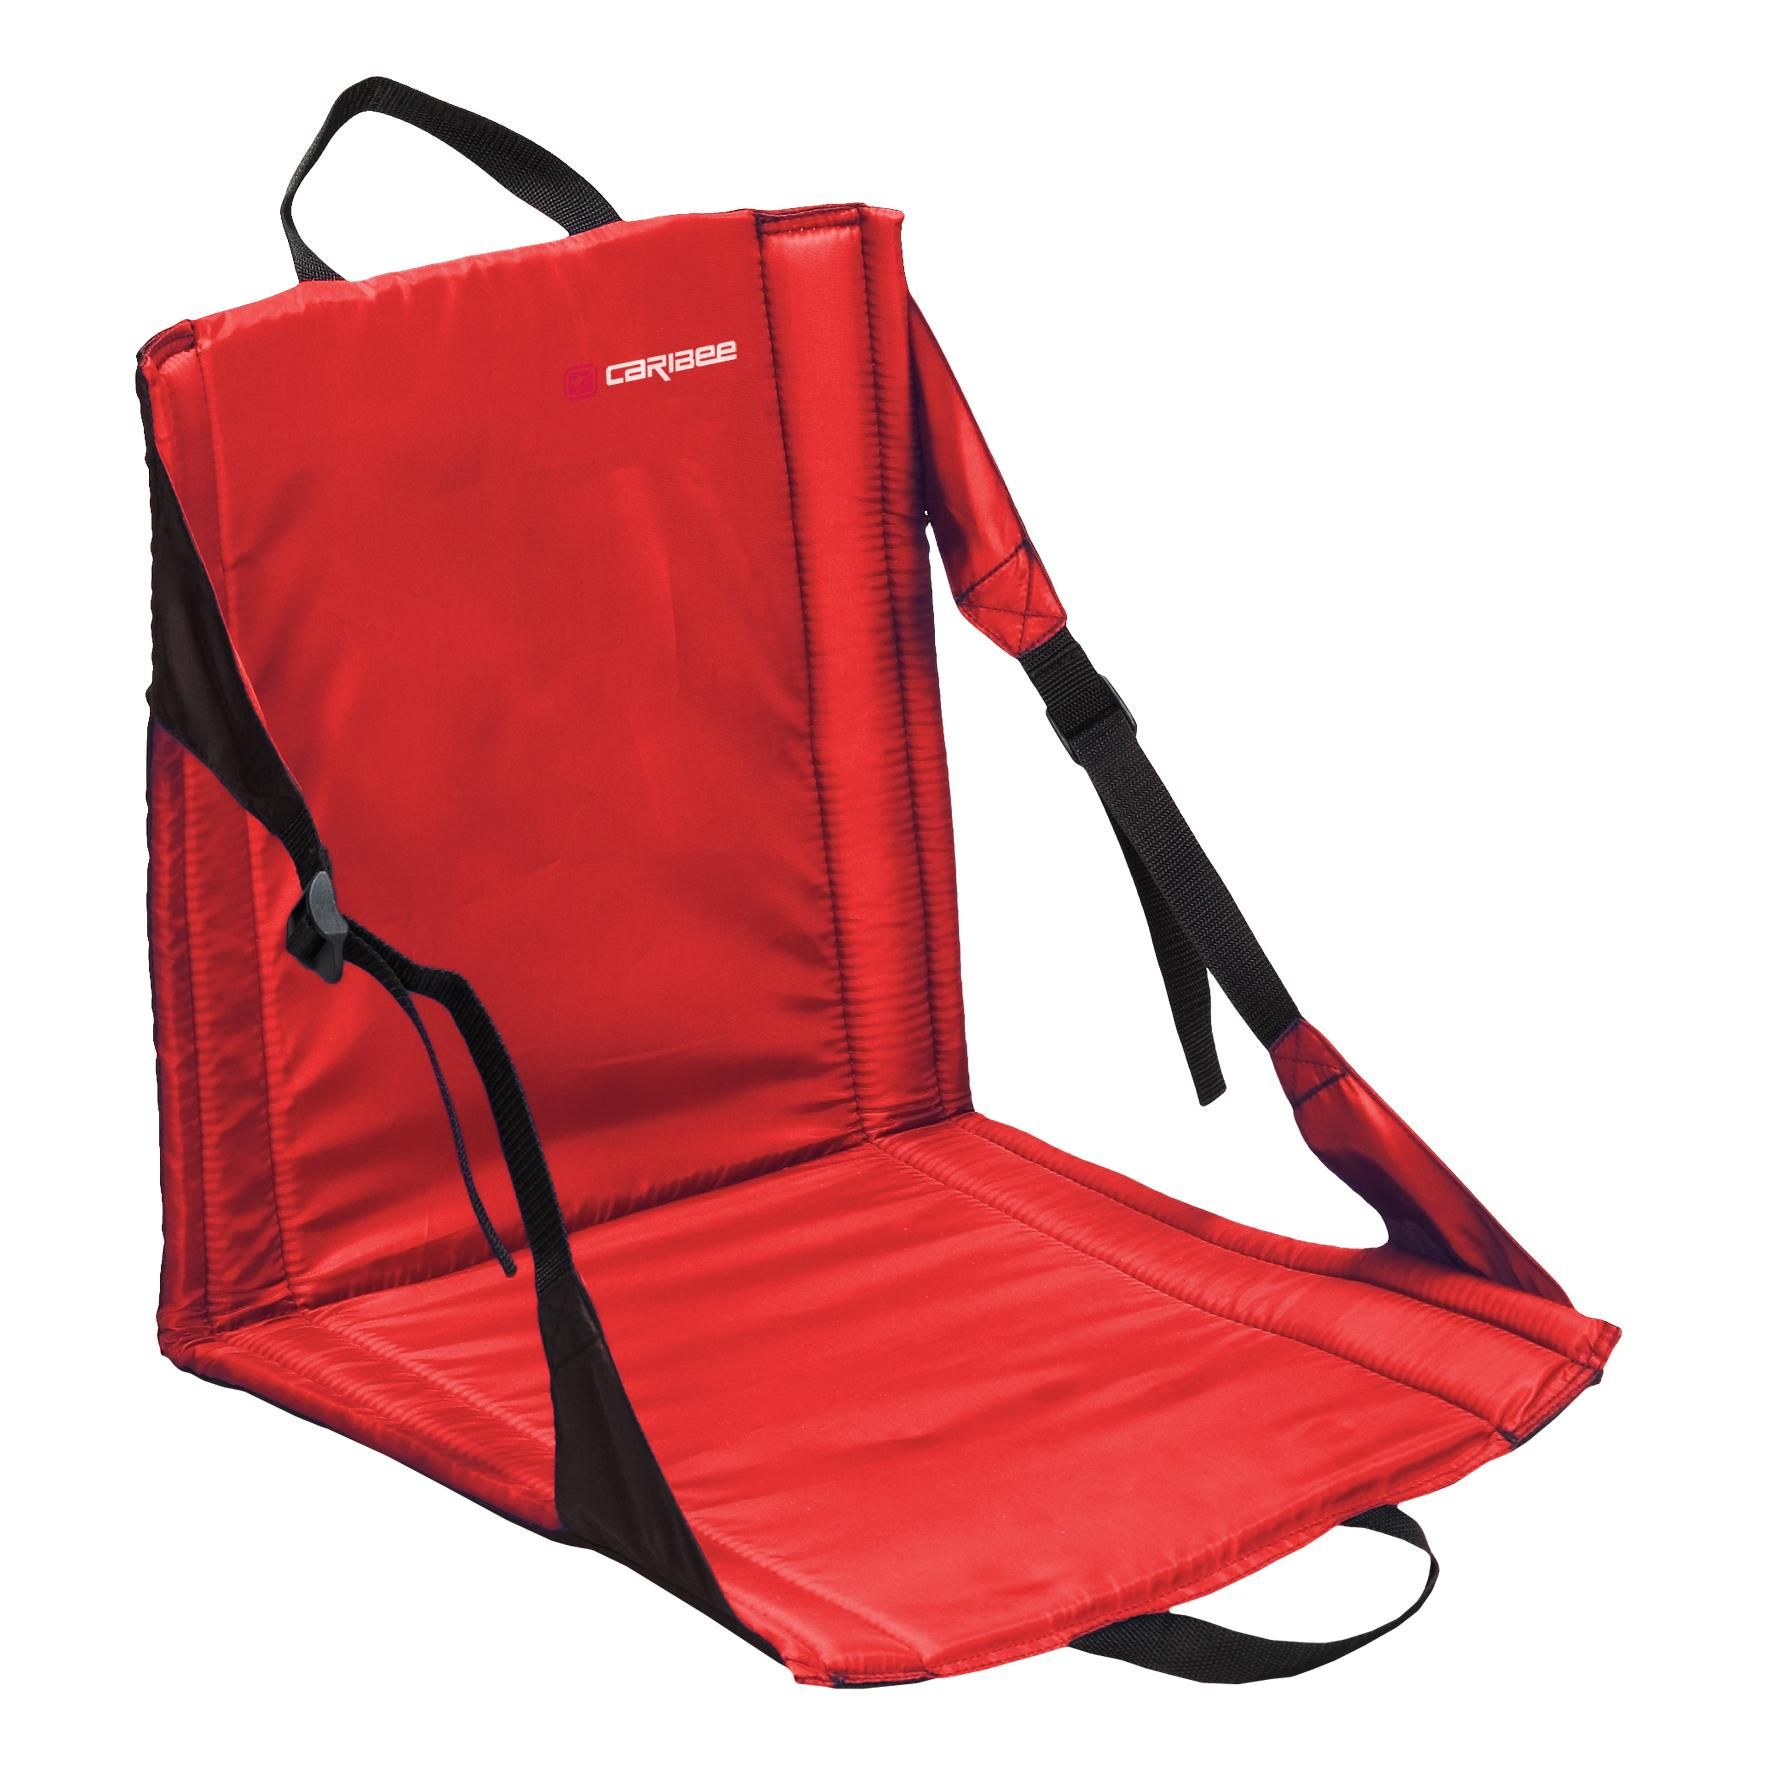 Caribee Beach Seat Super Light And Compact Seat Great For The Beach Or Concerts 19 95 Www Kelly Beach Chairs Portable Beach Chairs Inflatable Beach Chairs